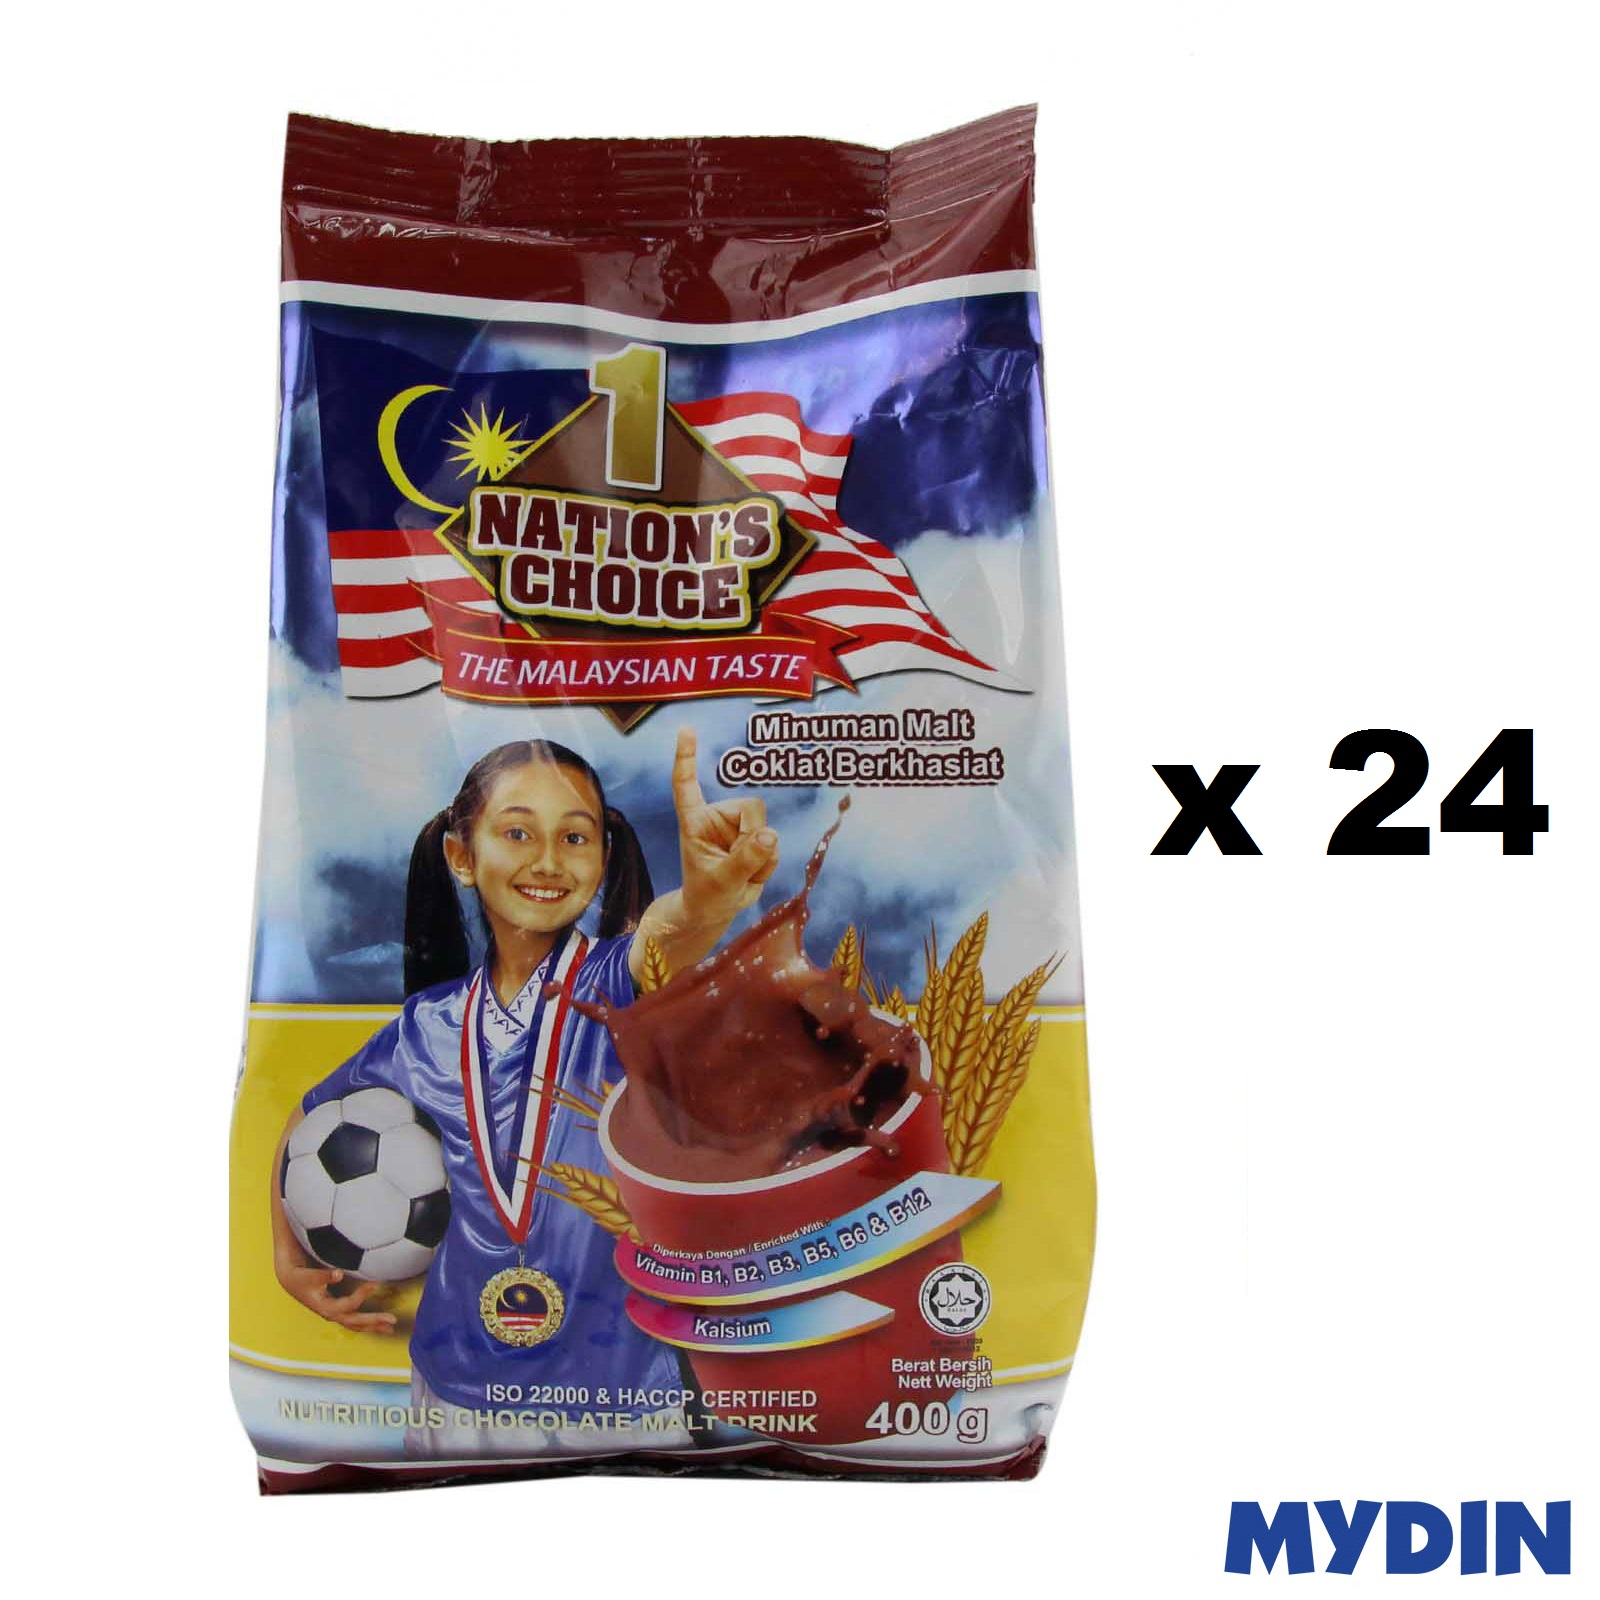 1 Nations Chocolate Malt (400g x 24)